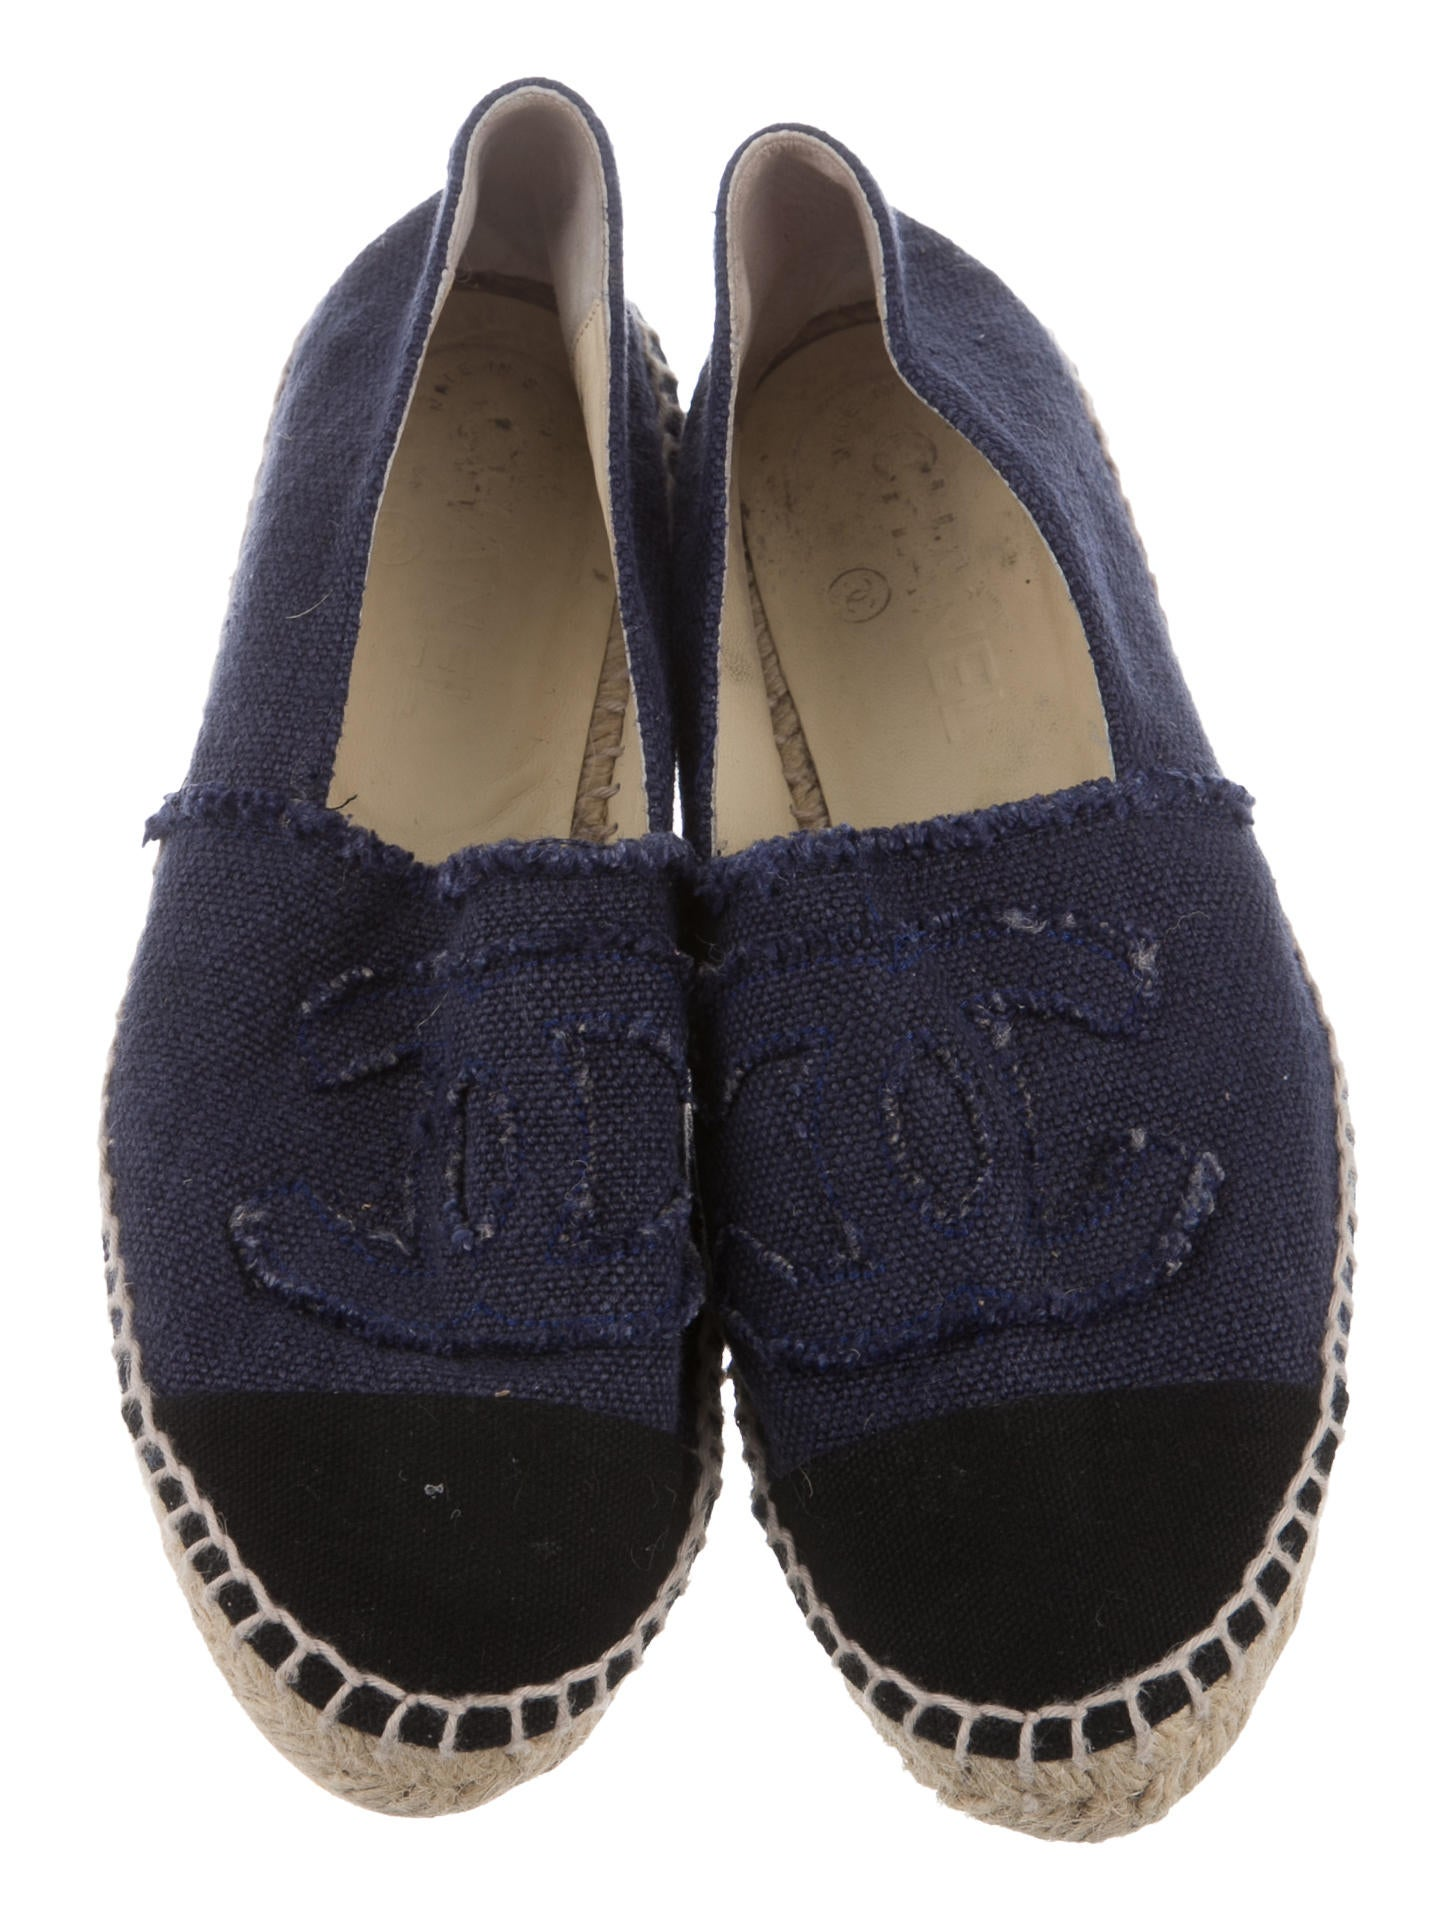 chanel canvas espadrille flats shoes cha164009 the